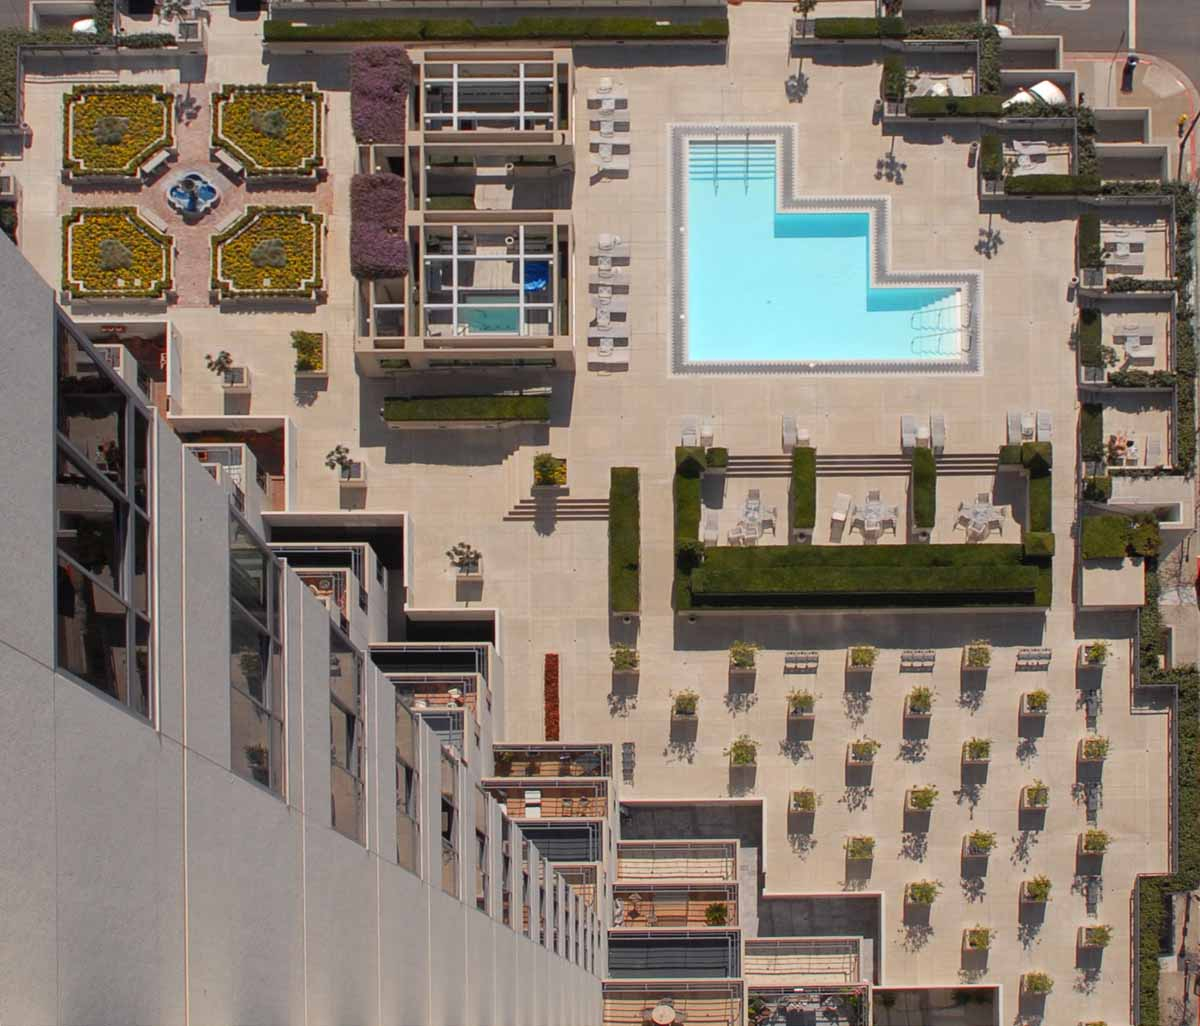 "<span class=""caption-true"">Common Area - Plaza level rooftop Pool</span>"